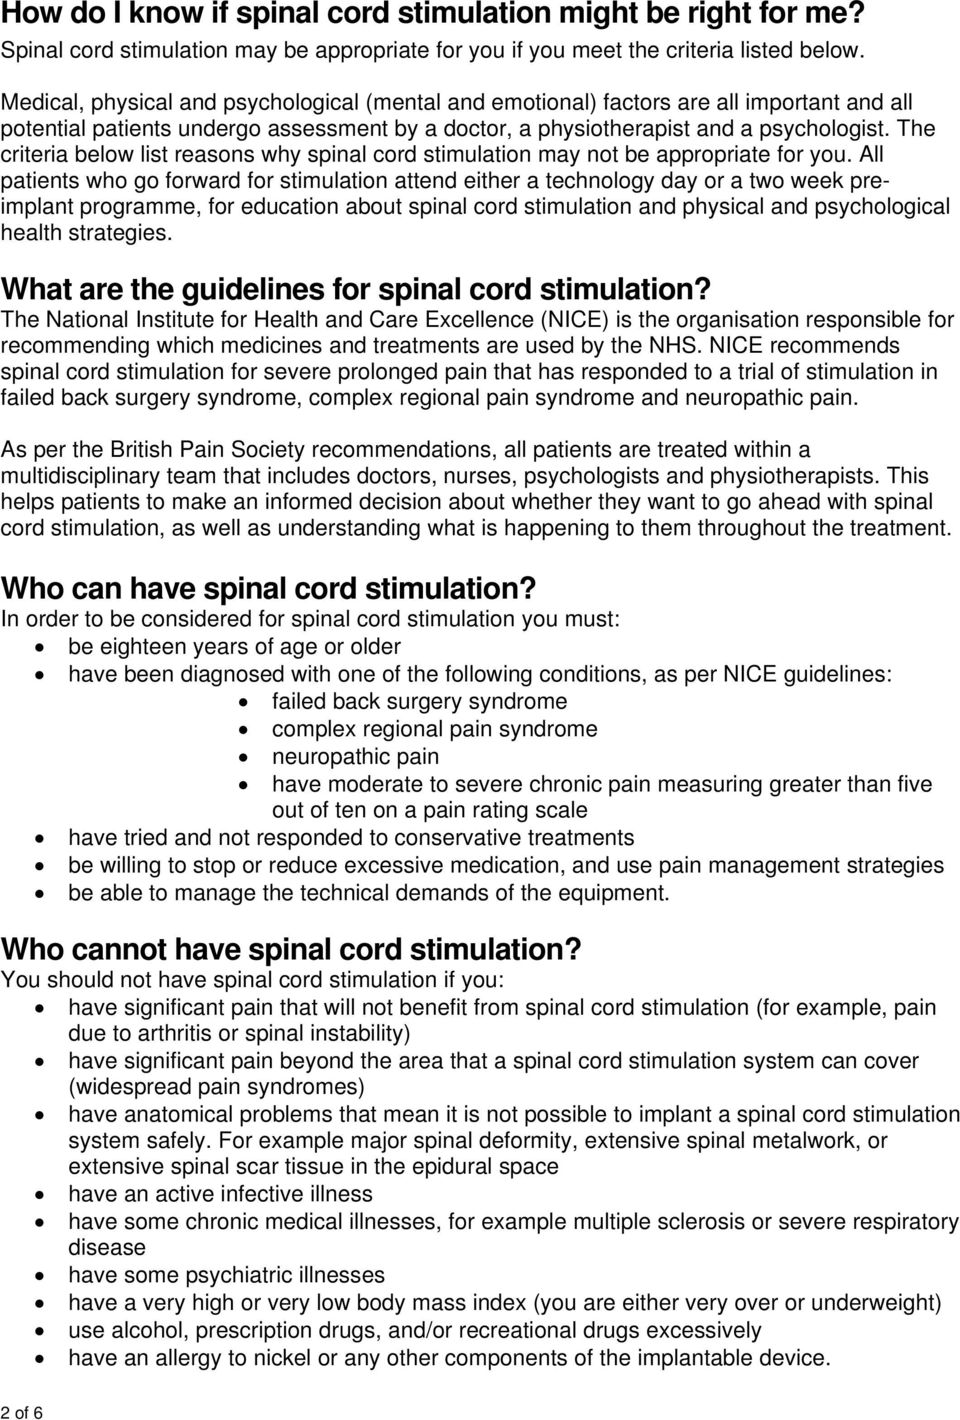 The criteria below list reasons why spinal cord stimulation may not be appropriate for you.